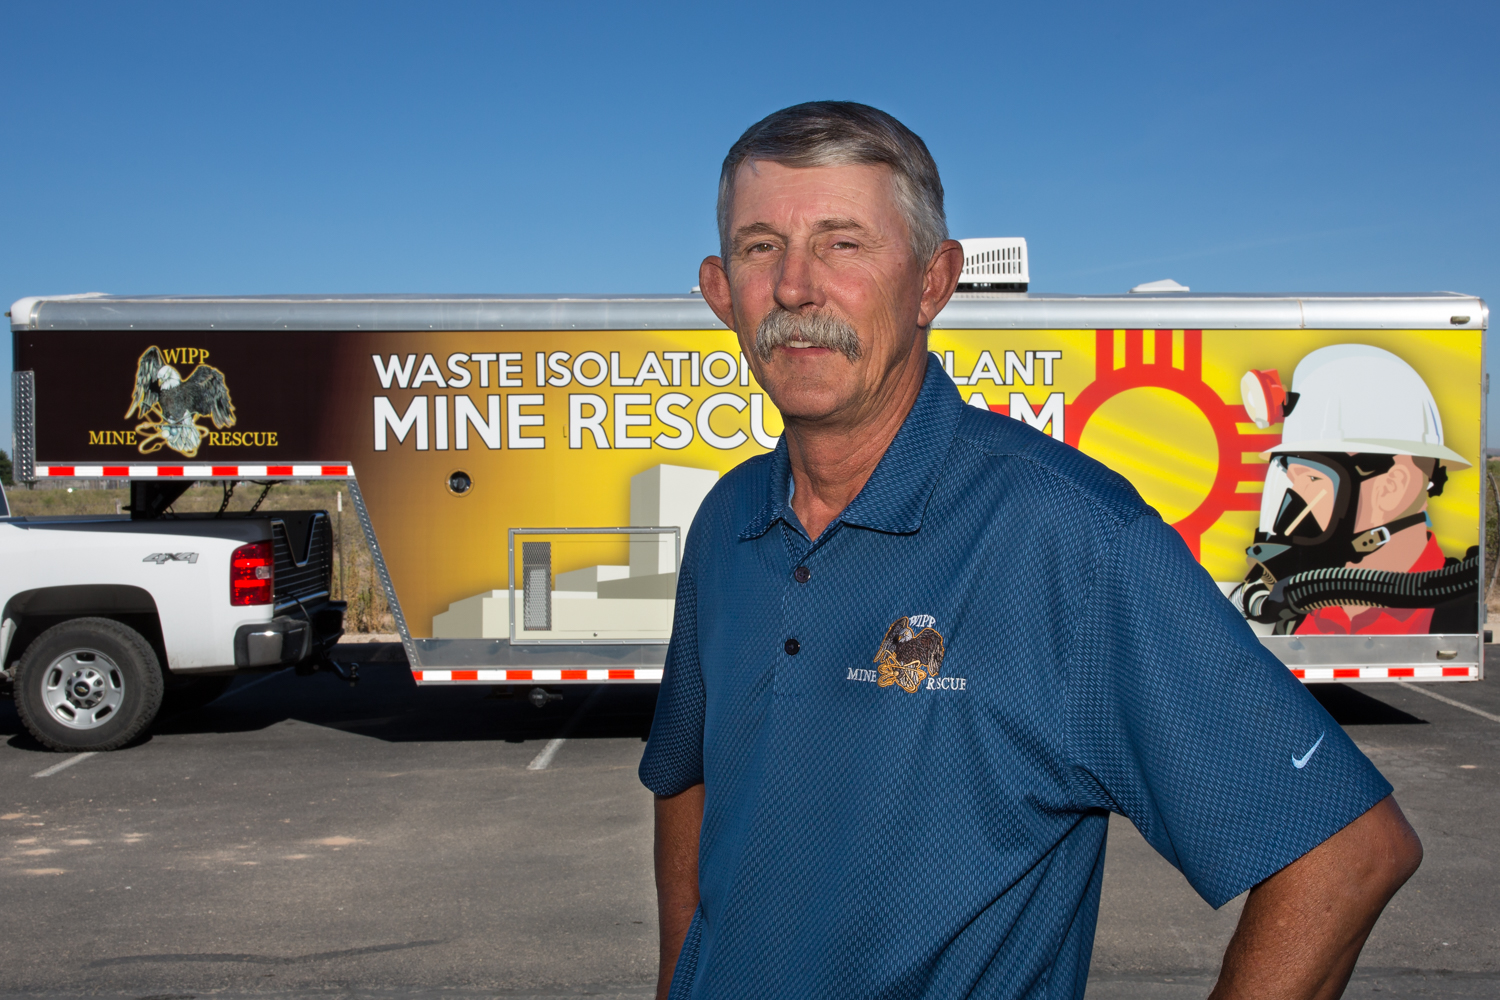 photo of Richard 'Stik' West Standing infront of the WIPP Mine Rescue Truck and Trailer